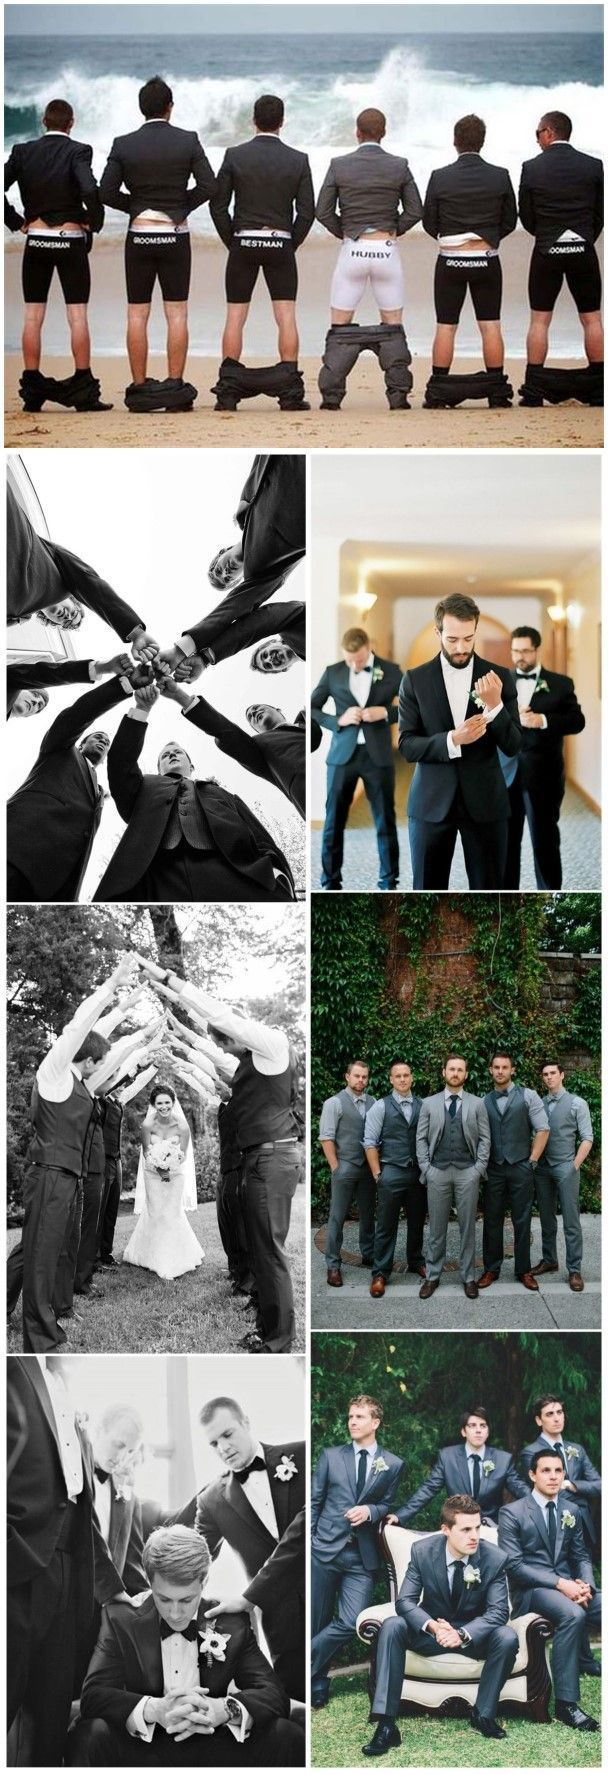 21 Must-have Groomsmen Photos Ideas to Make an Awesome Wedding – WeddingInclude – Boda fotos